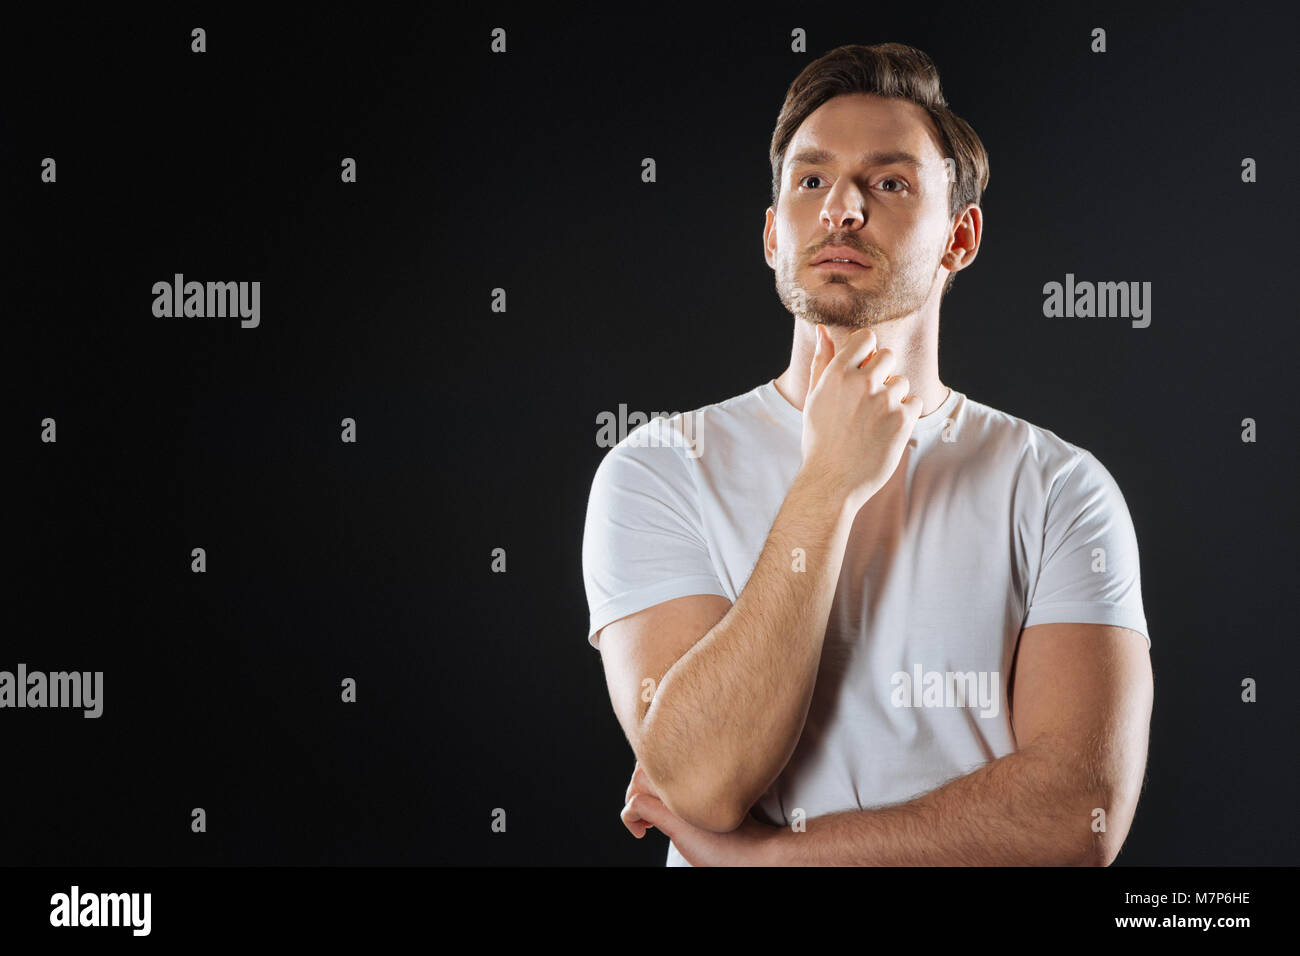 Deep clever man standing and thinking. - Stock Image